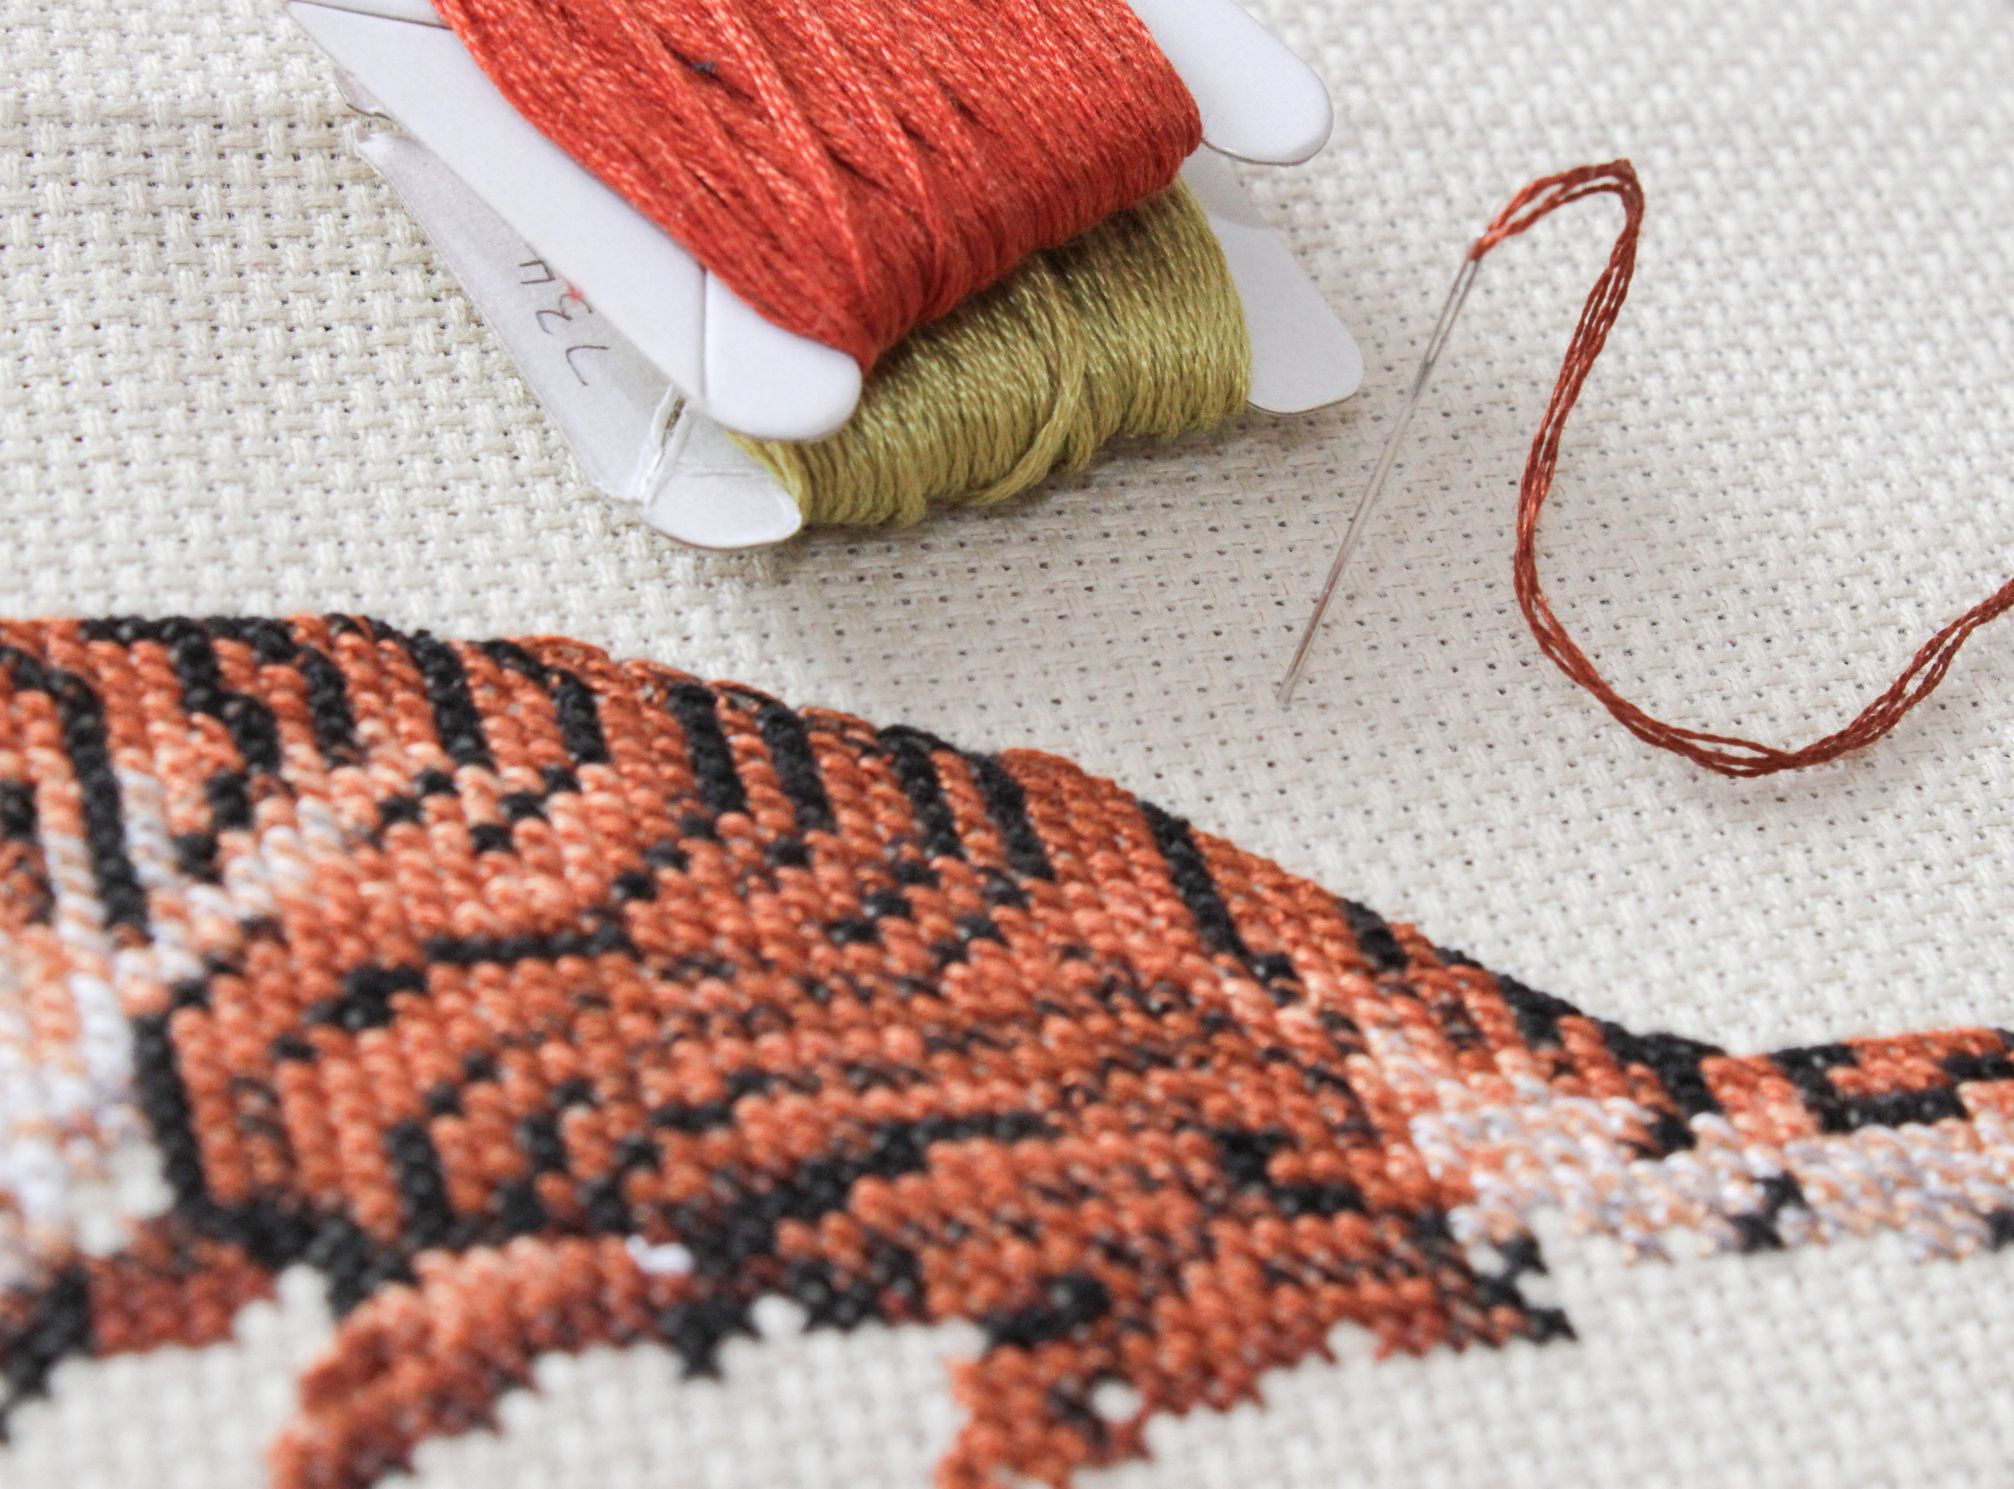 The Top 10 Gift Ideas for Embroiderers